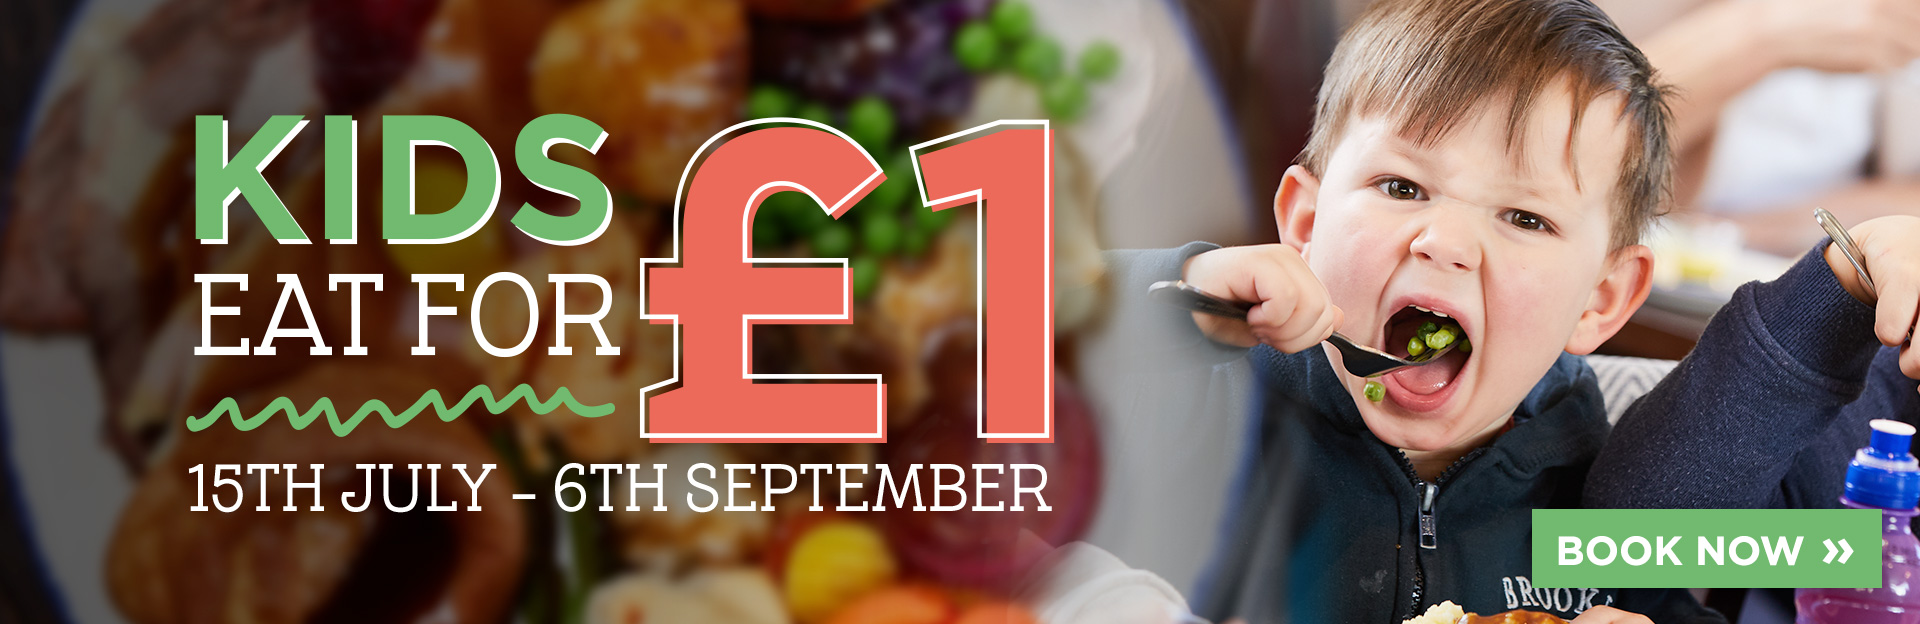 Kids eat for £1 at The Tramway